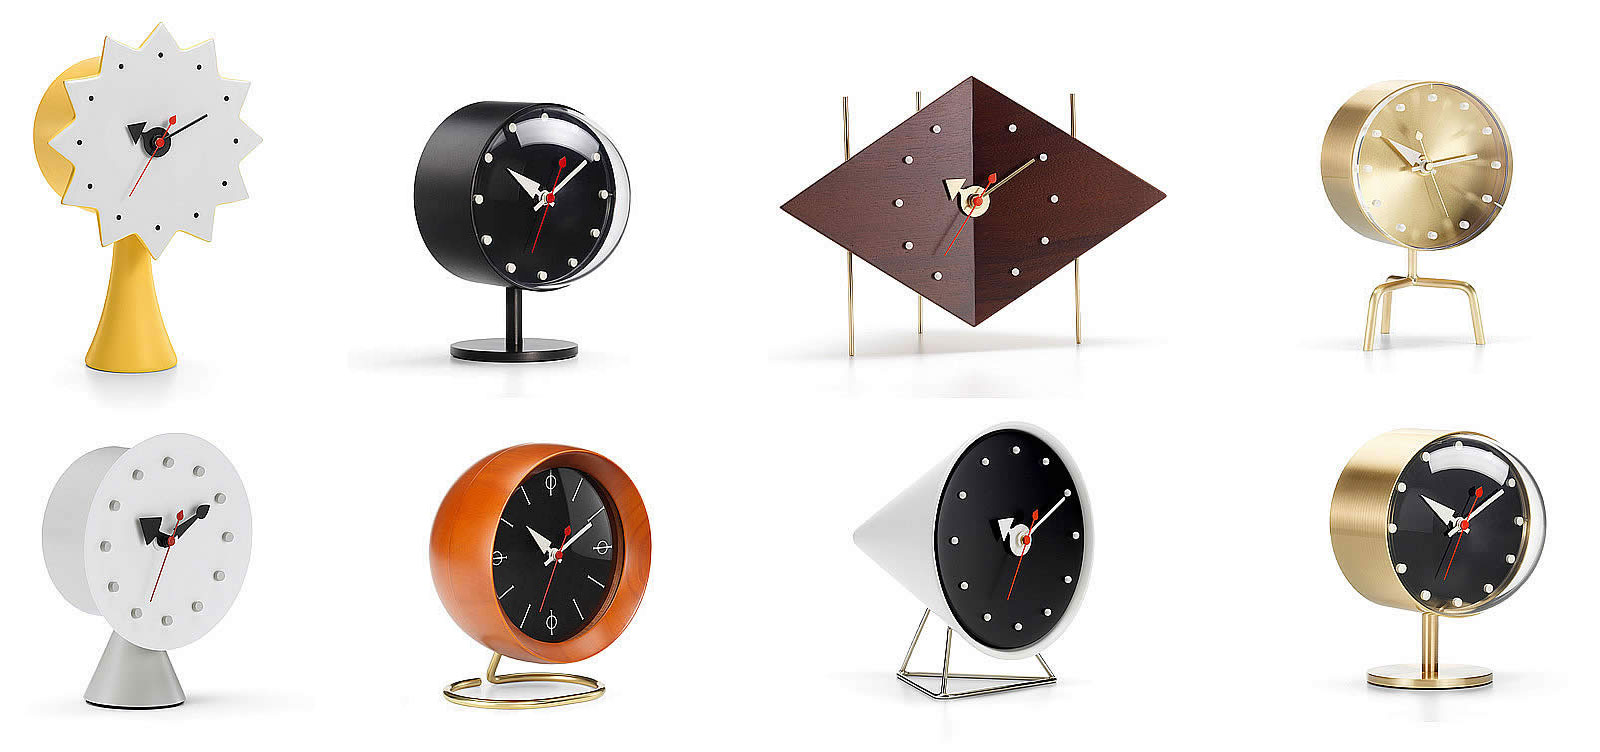 George Nelson clock installation showing scale